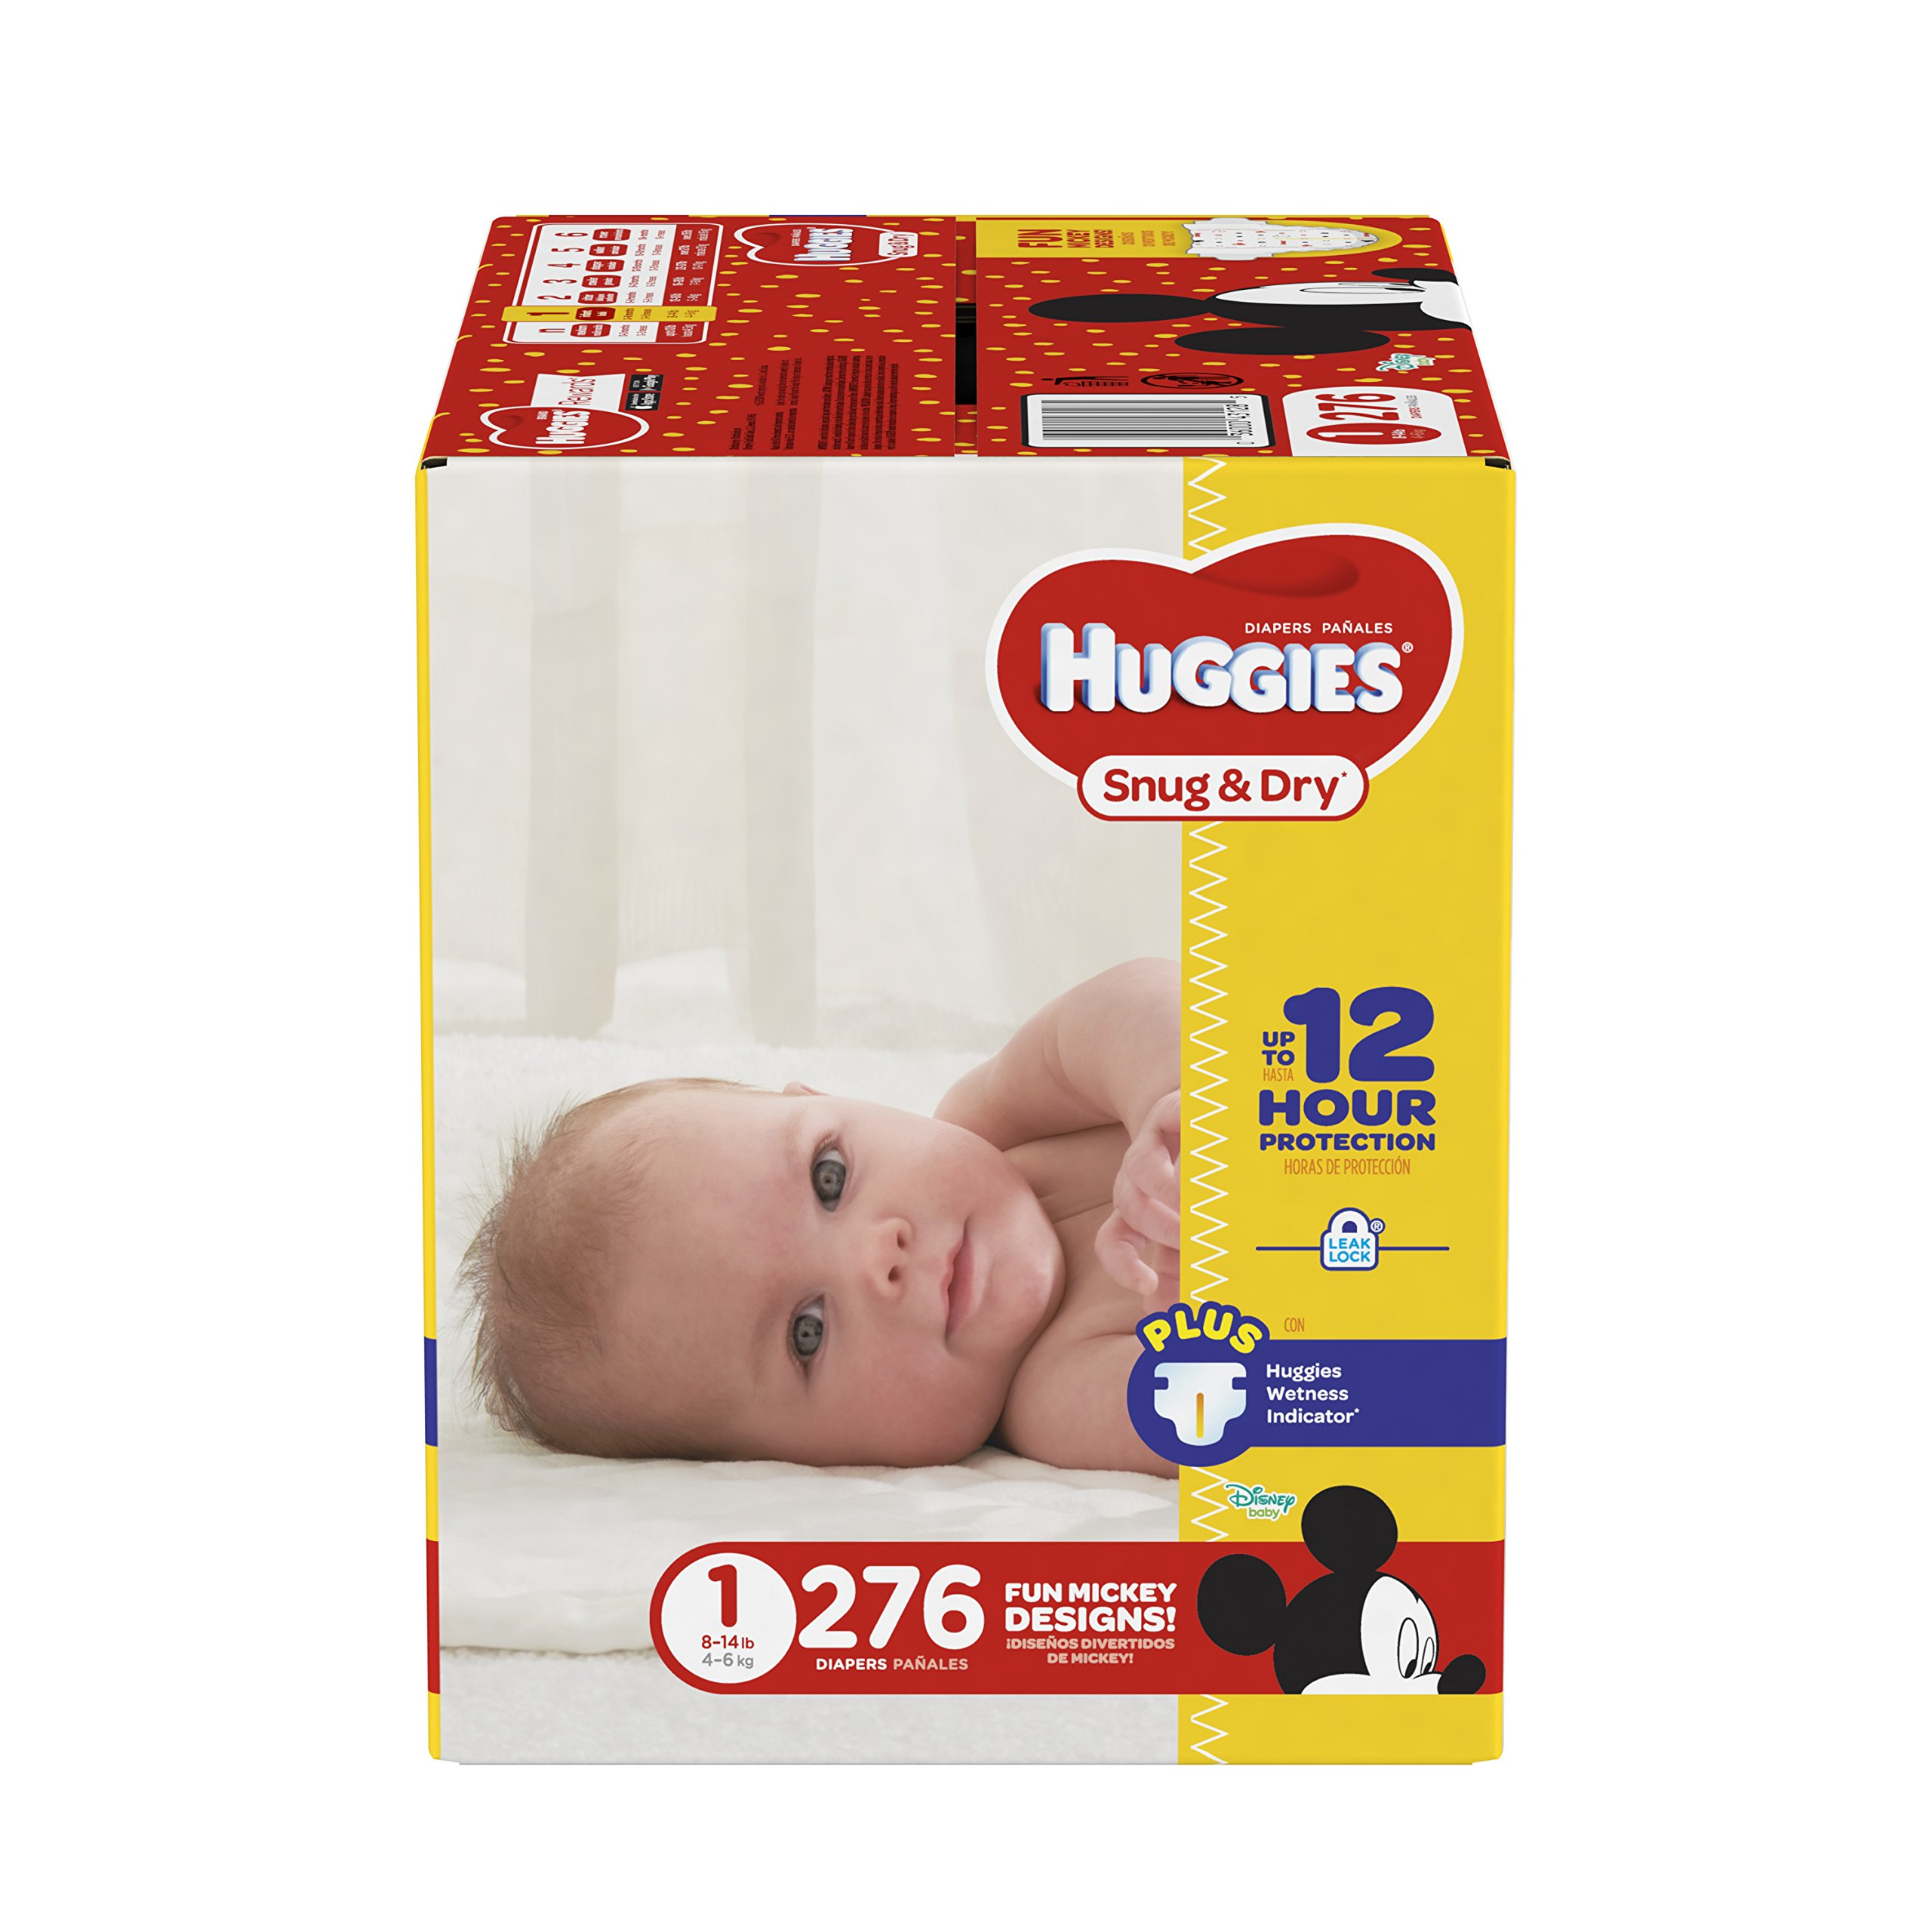 HUGGIES Snug & Dry Diapers, Size 1, 276 Count, ECONOMY PLUS (Packaging